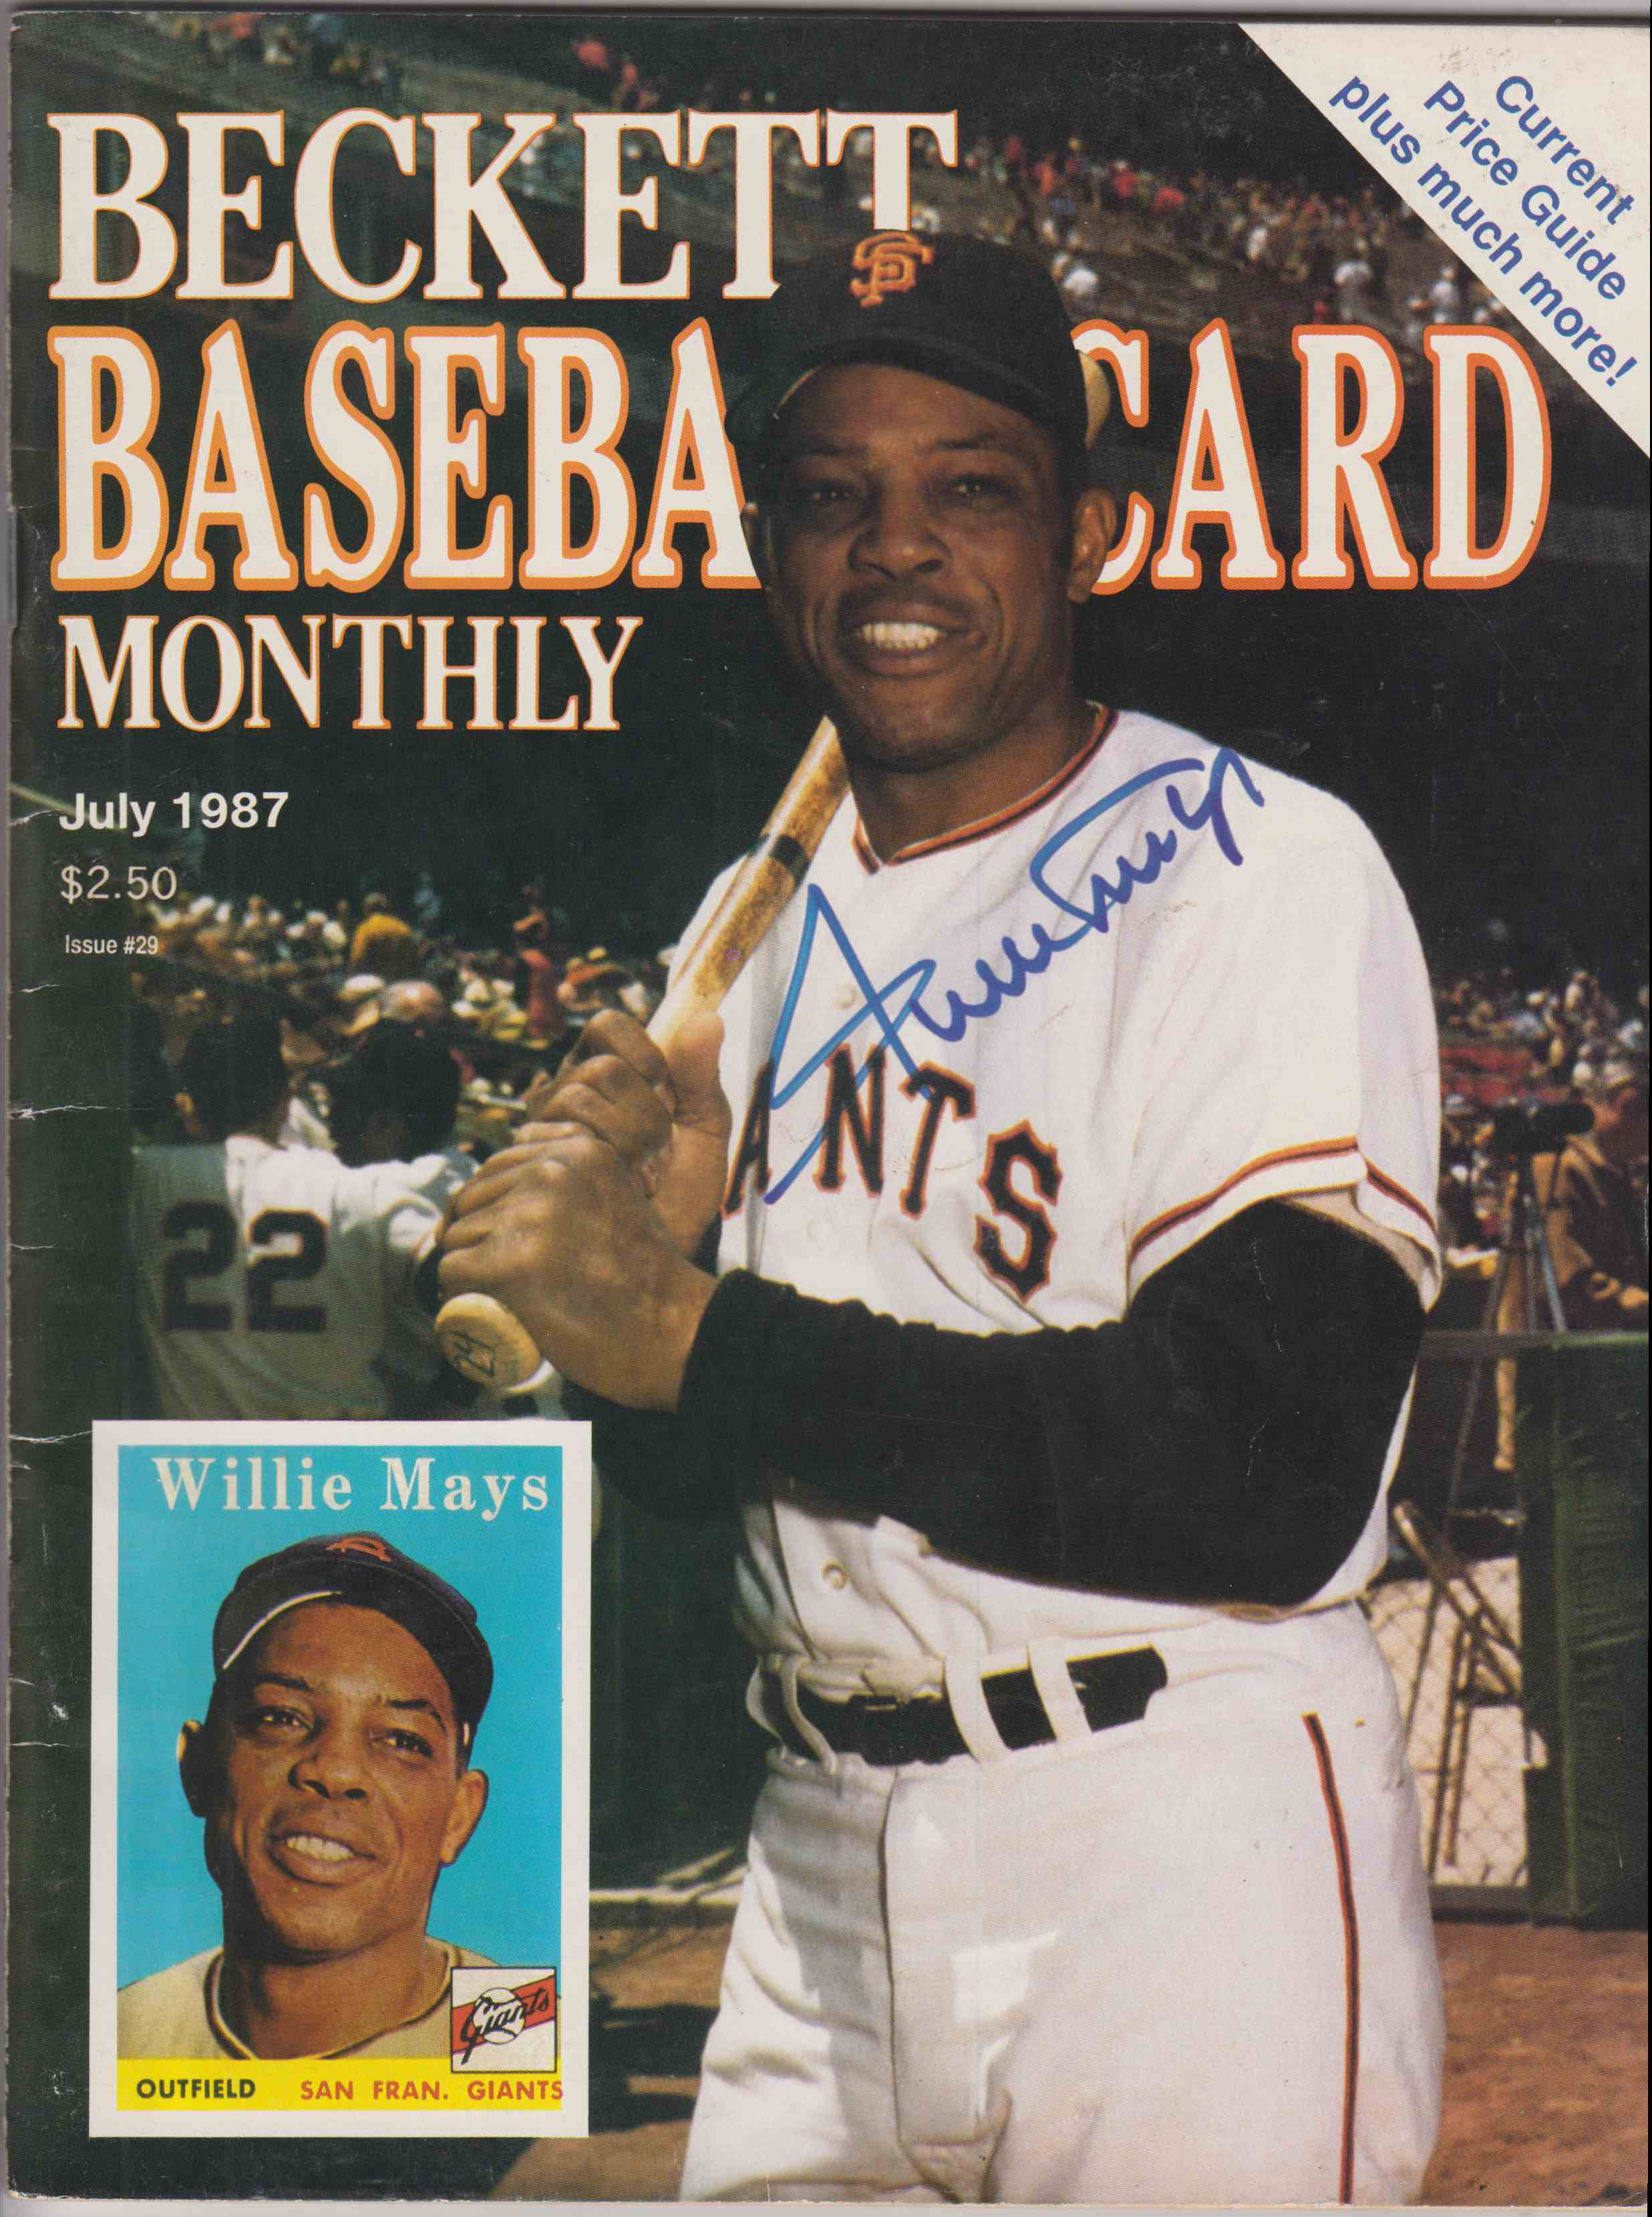 1987 Beckett July 1987 Magazine Willie Mays card front image